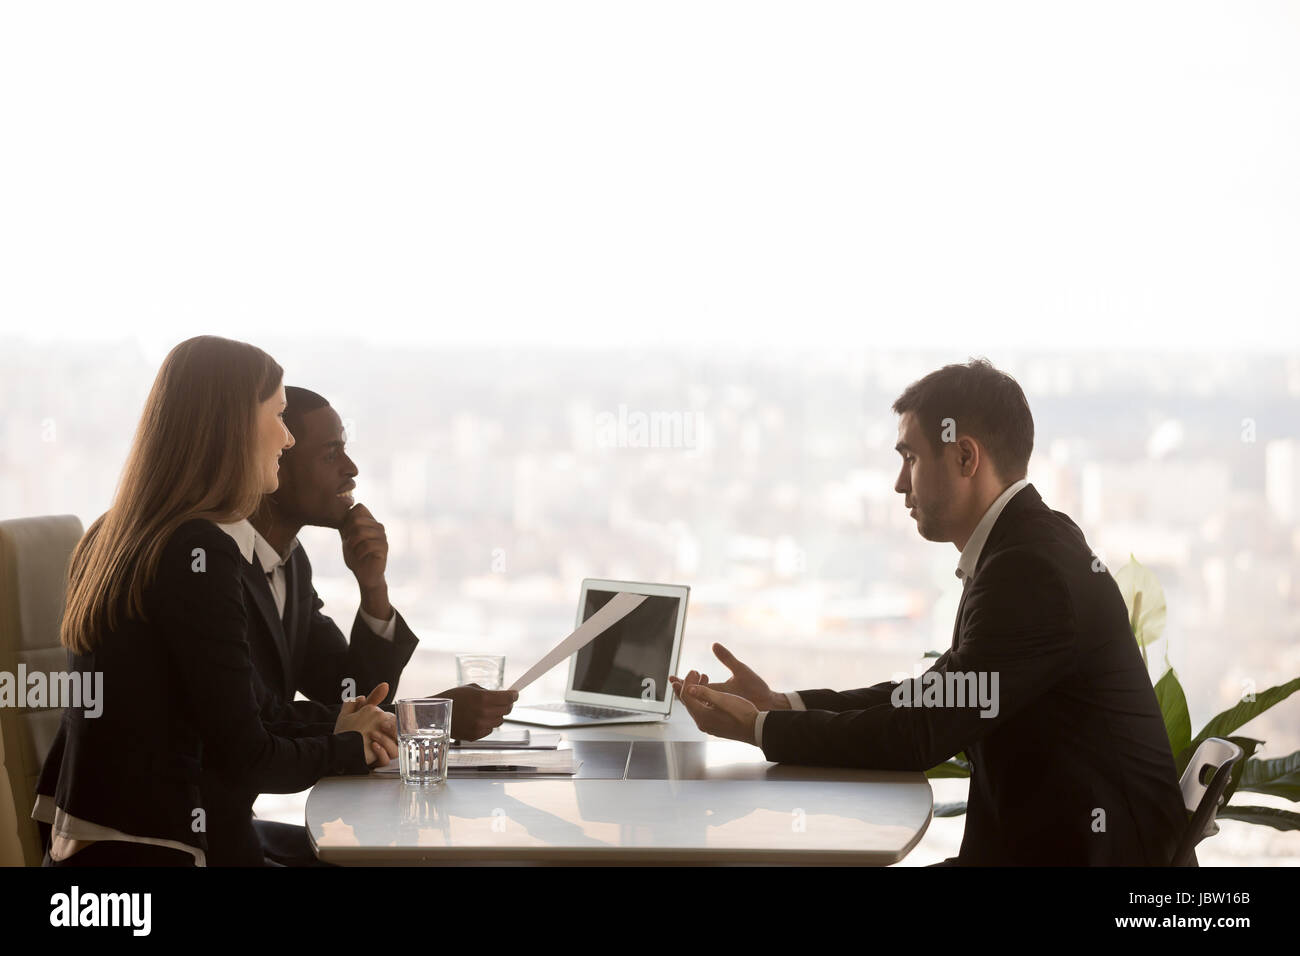 Friendly attentive hr managers interviewing vacancy applicant, multi-ethnic partners discussing new project idea - Stock Image